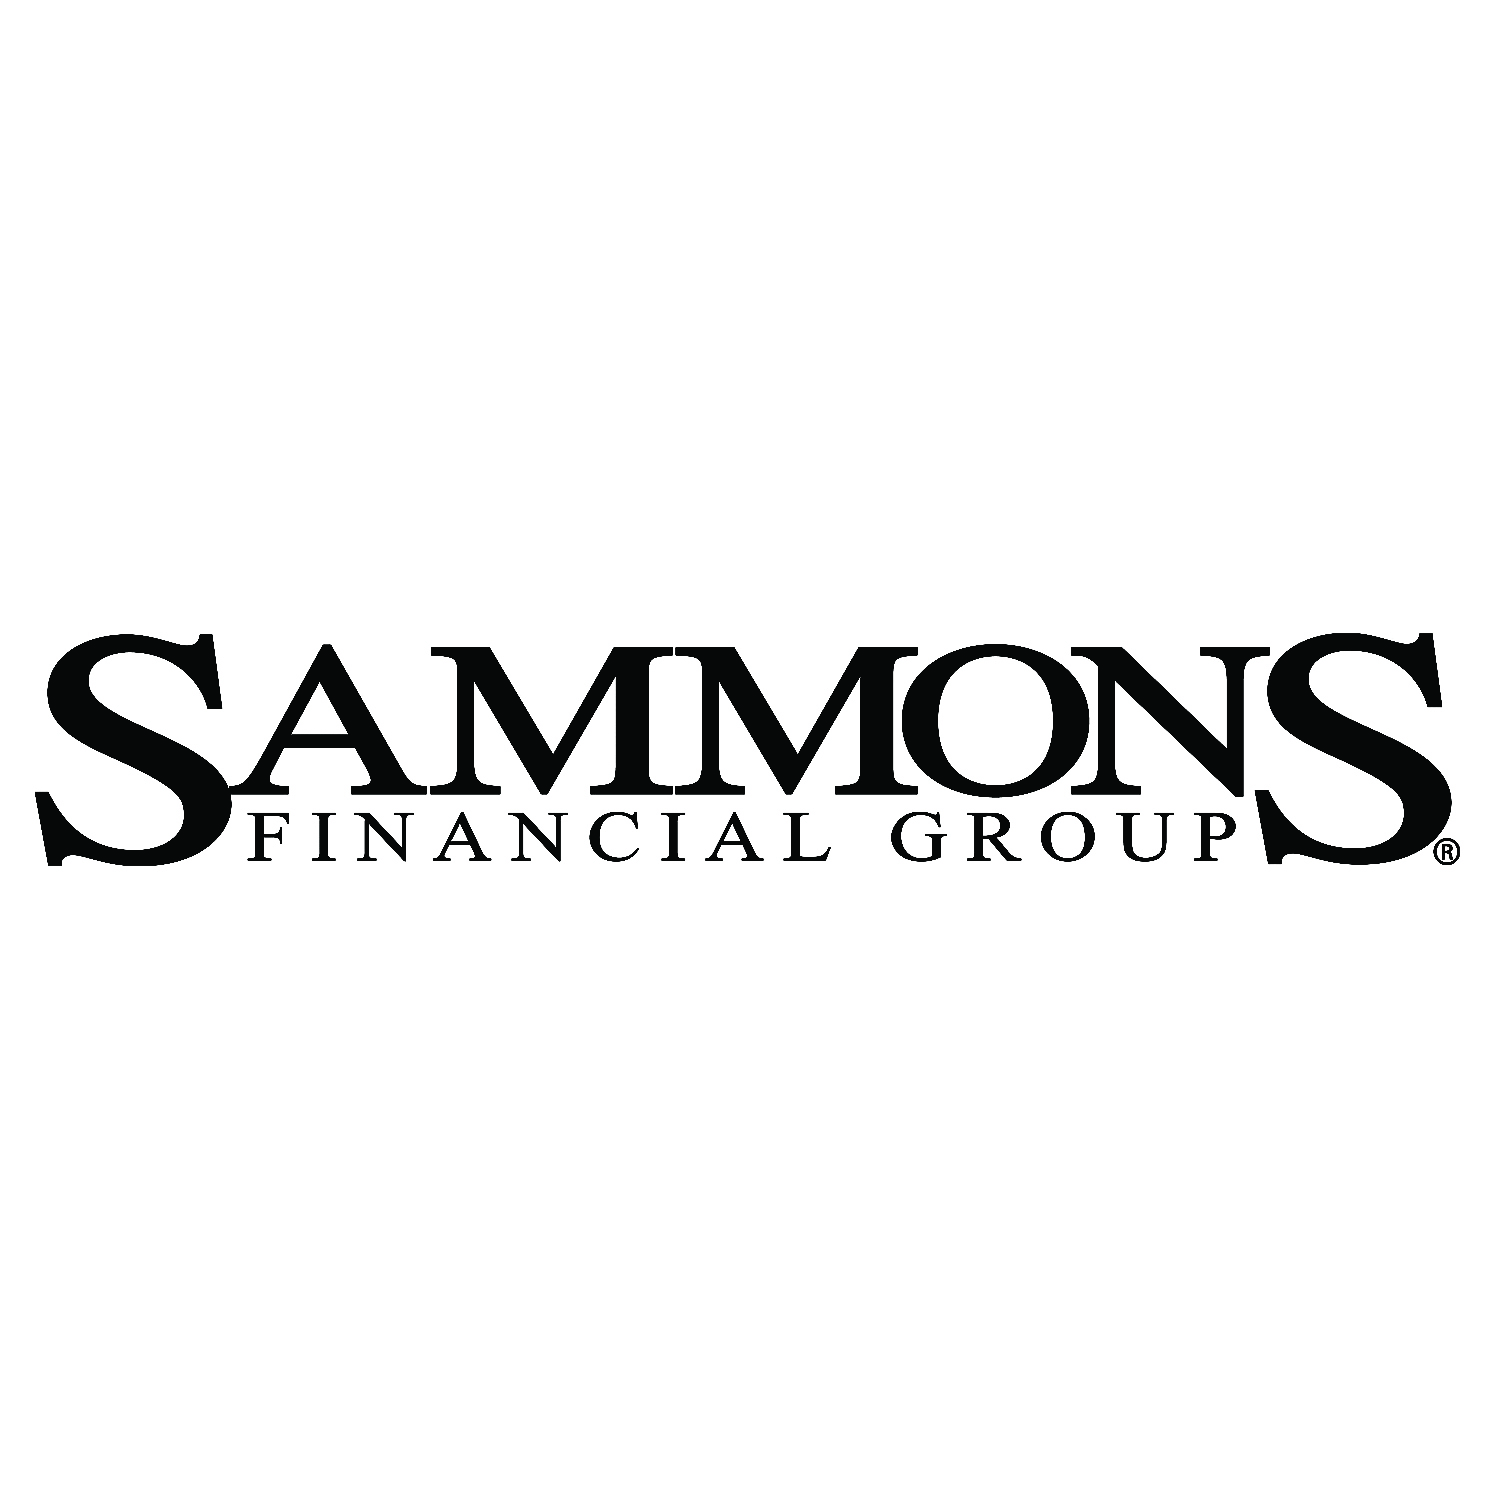 sammonsfinancial_bw.jpg